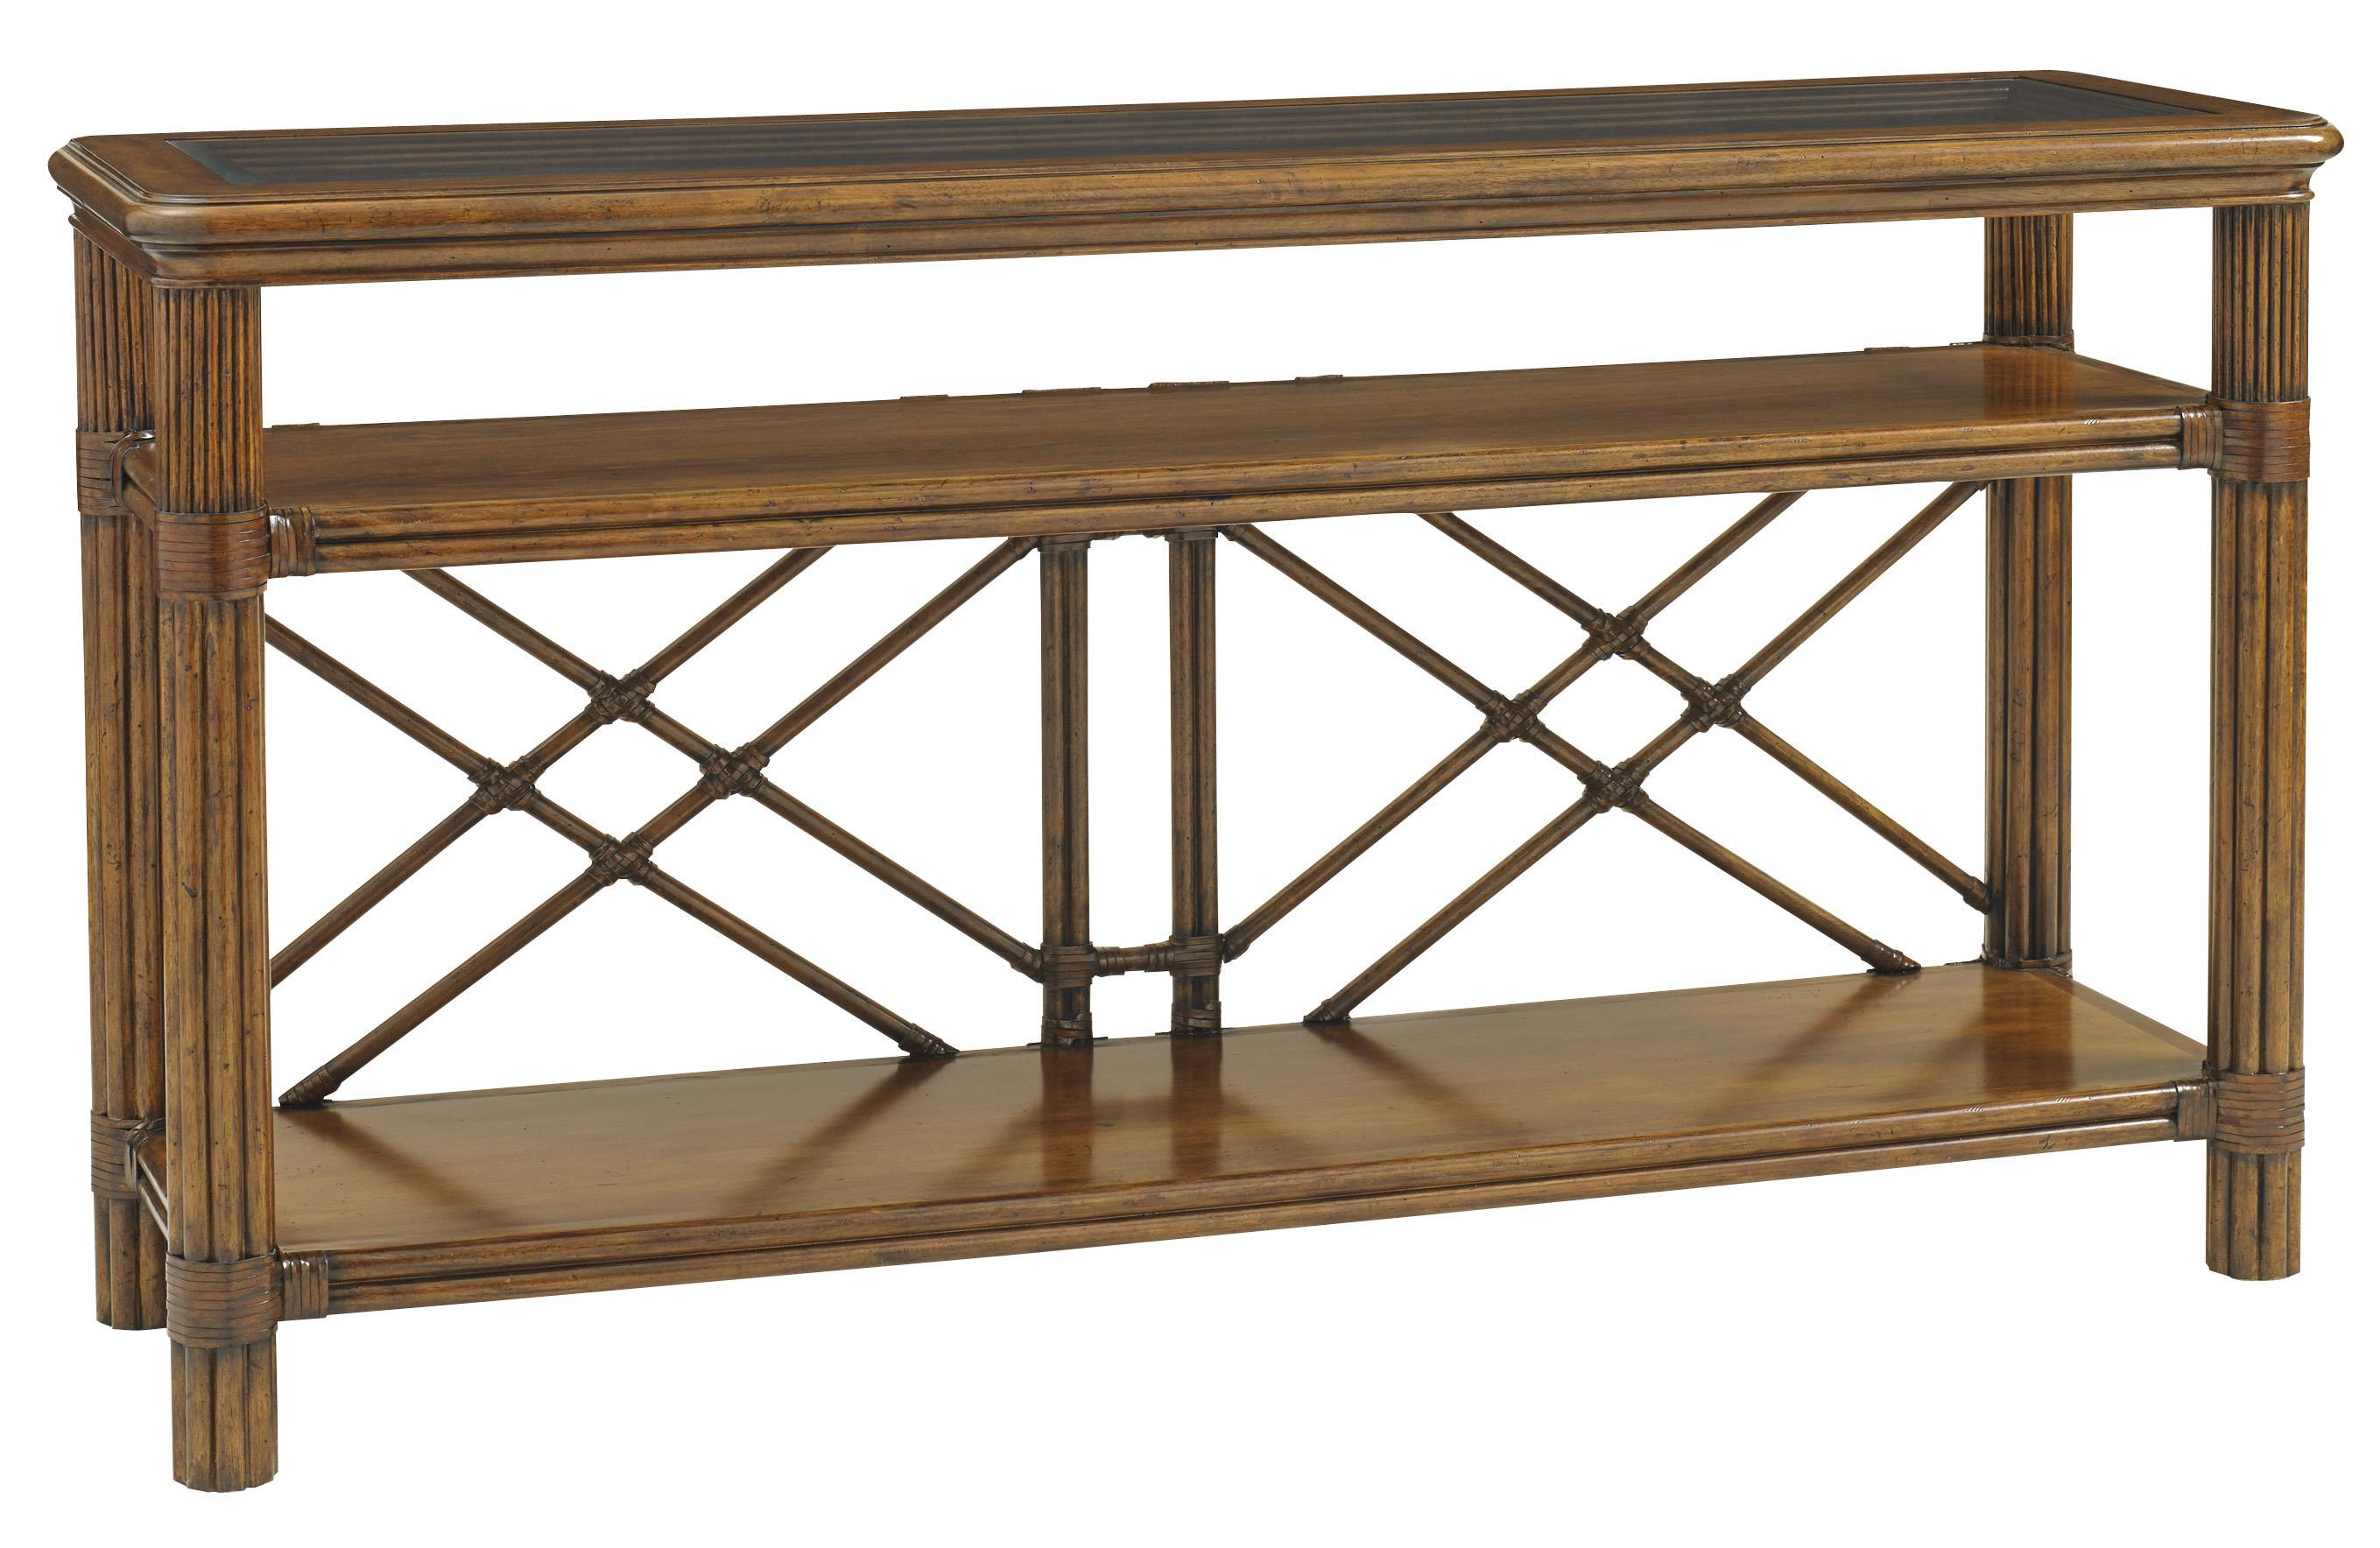 Tommy Bahama Home Bali Hai Islander Console Table   Item Number: 593 967